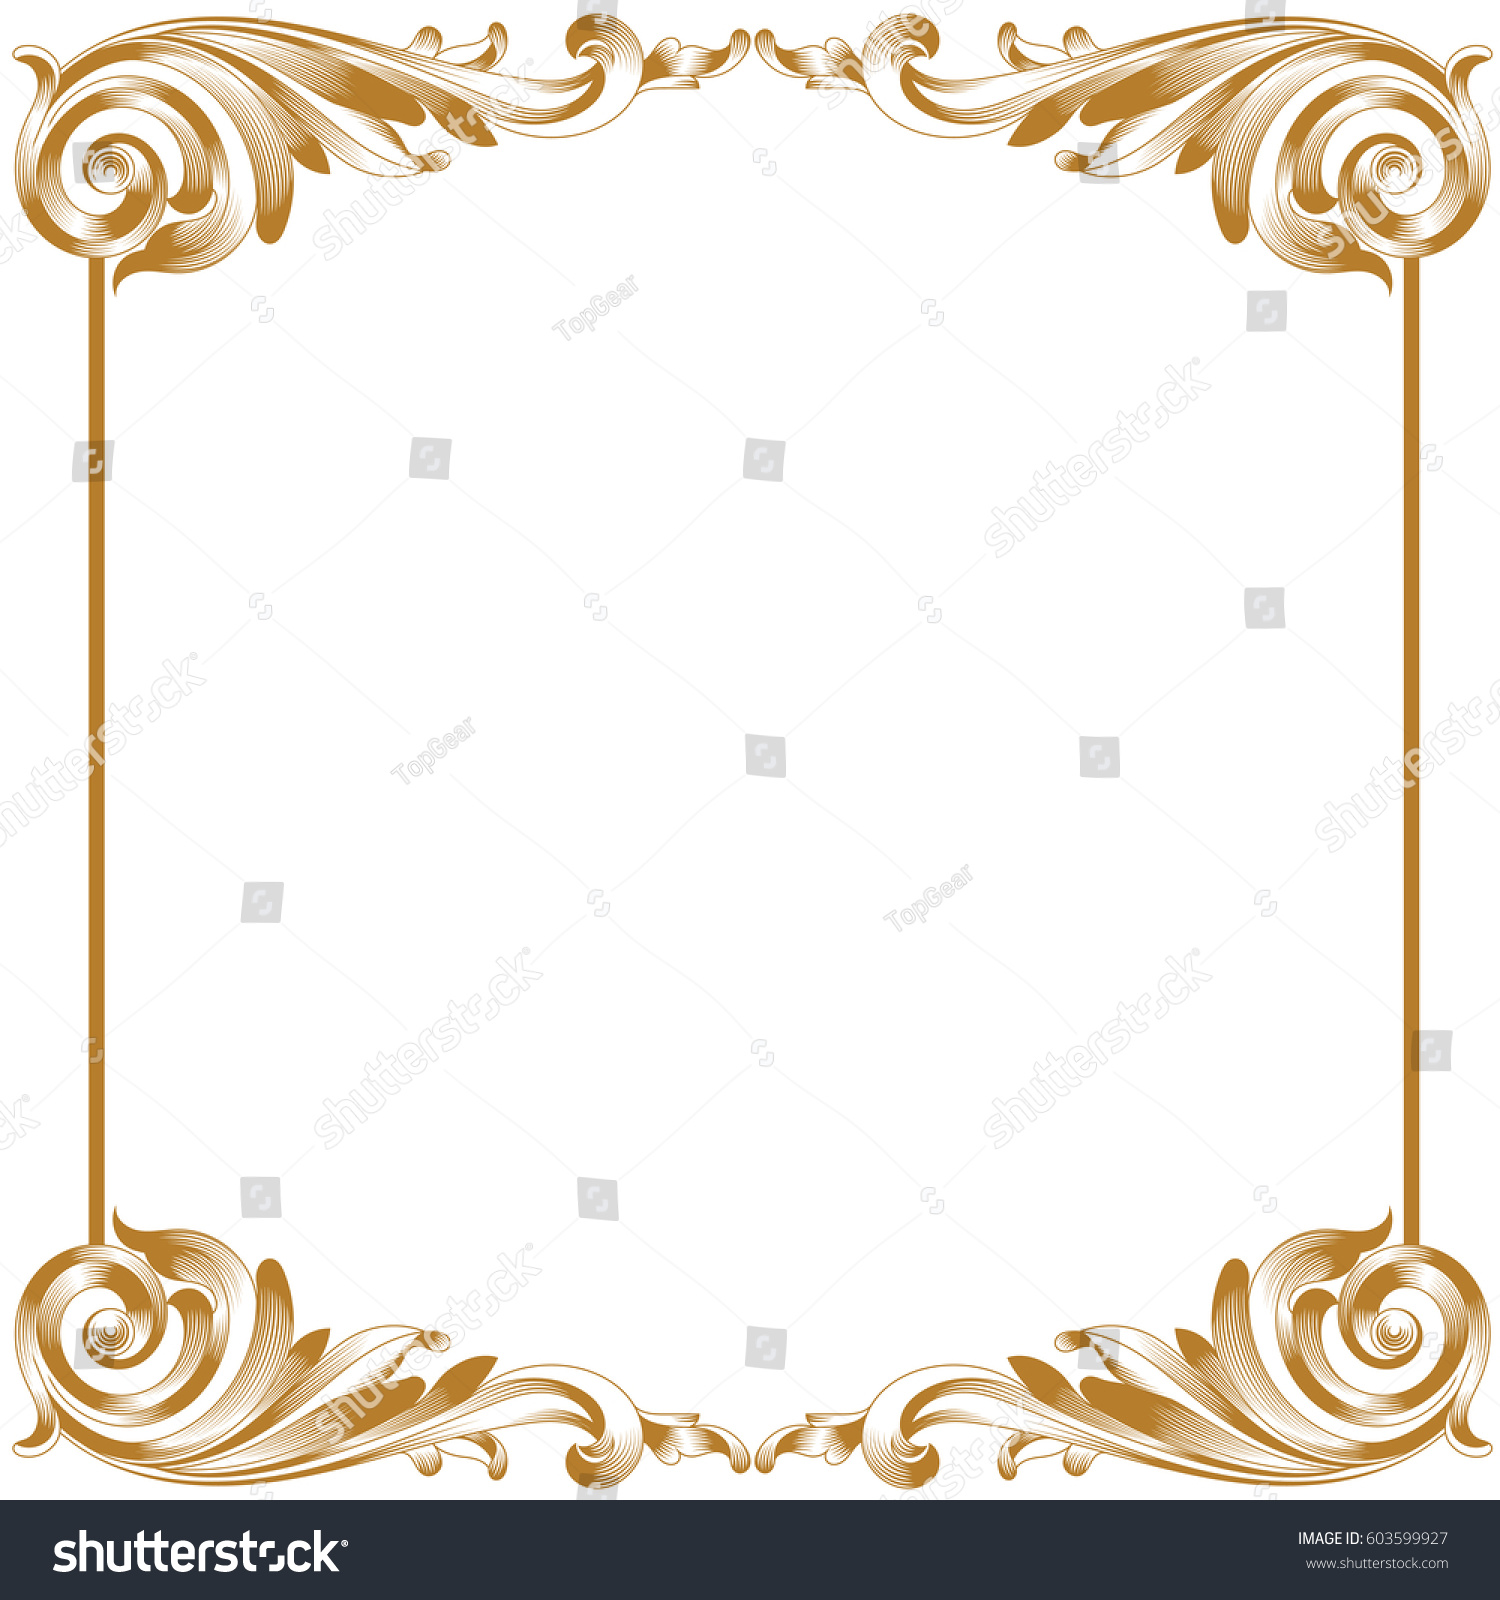 Golden Menu Template With Baroque Style